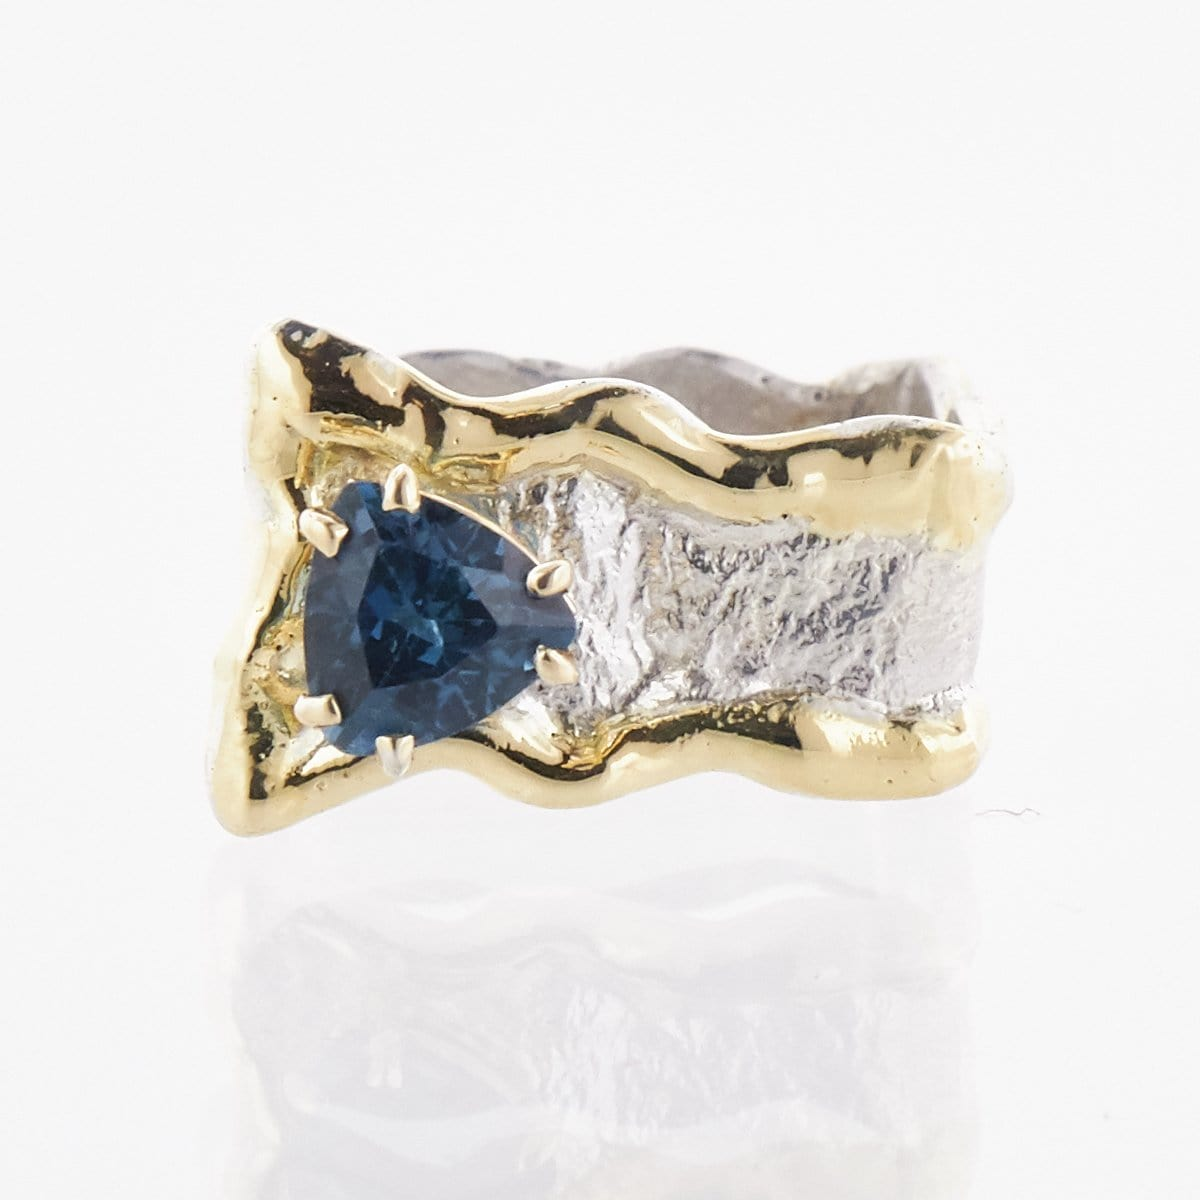 14K Gold & Crystalline Silver London Blue Topaz Ring - 33262 - Fusion Designs